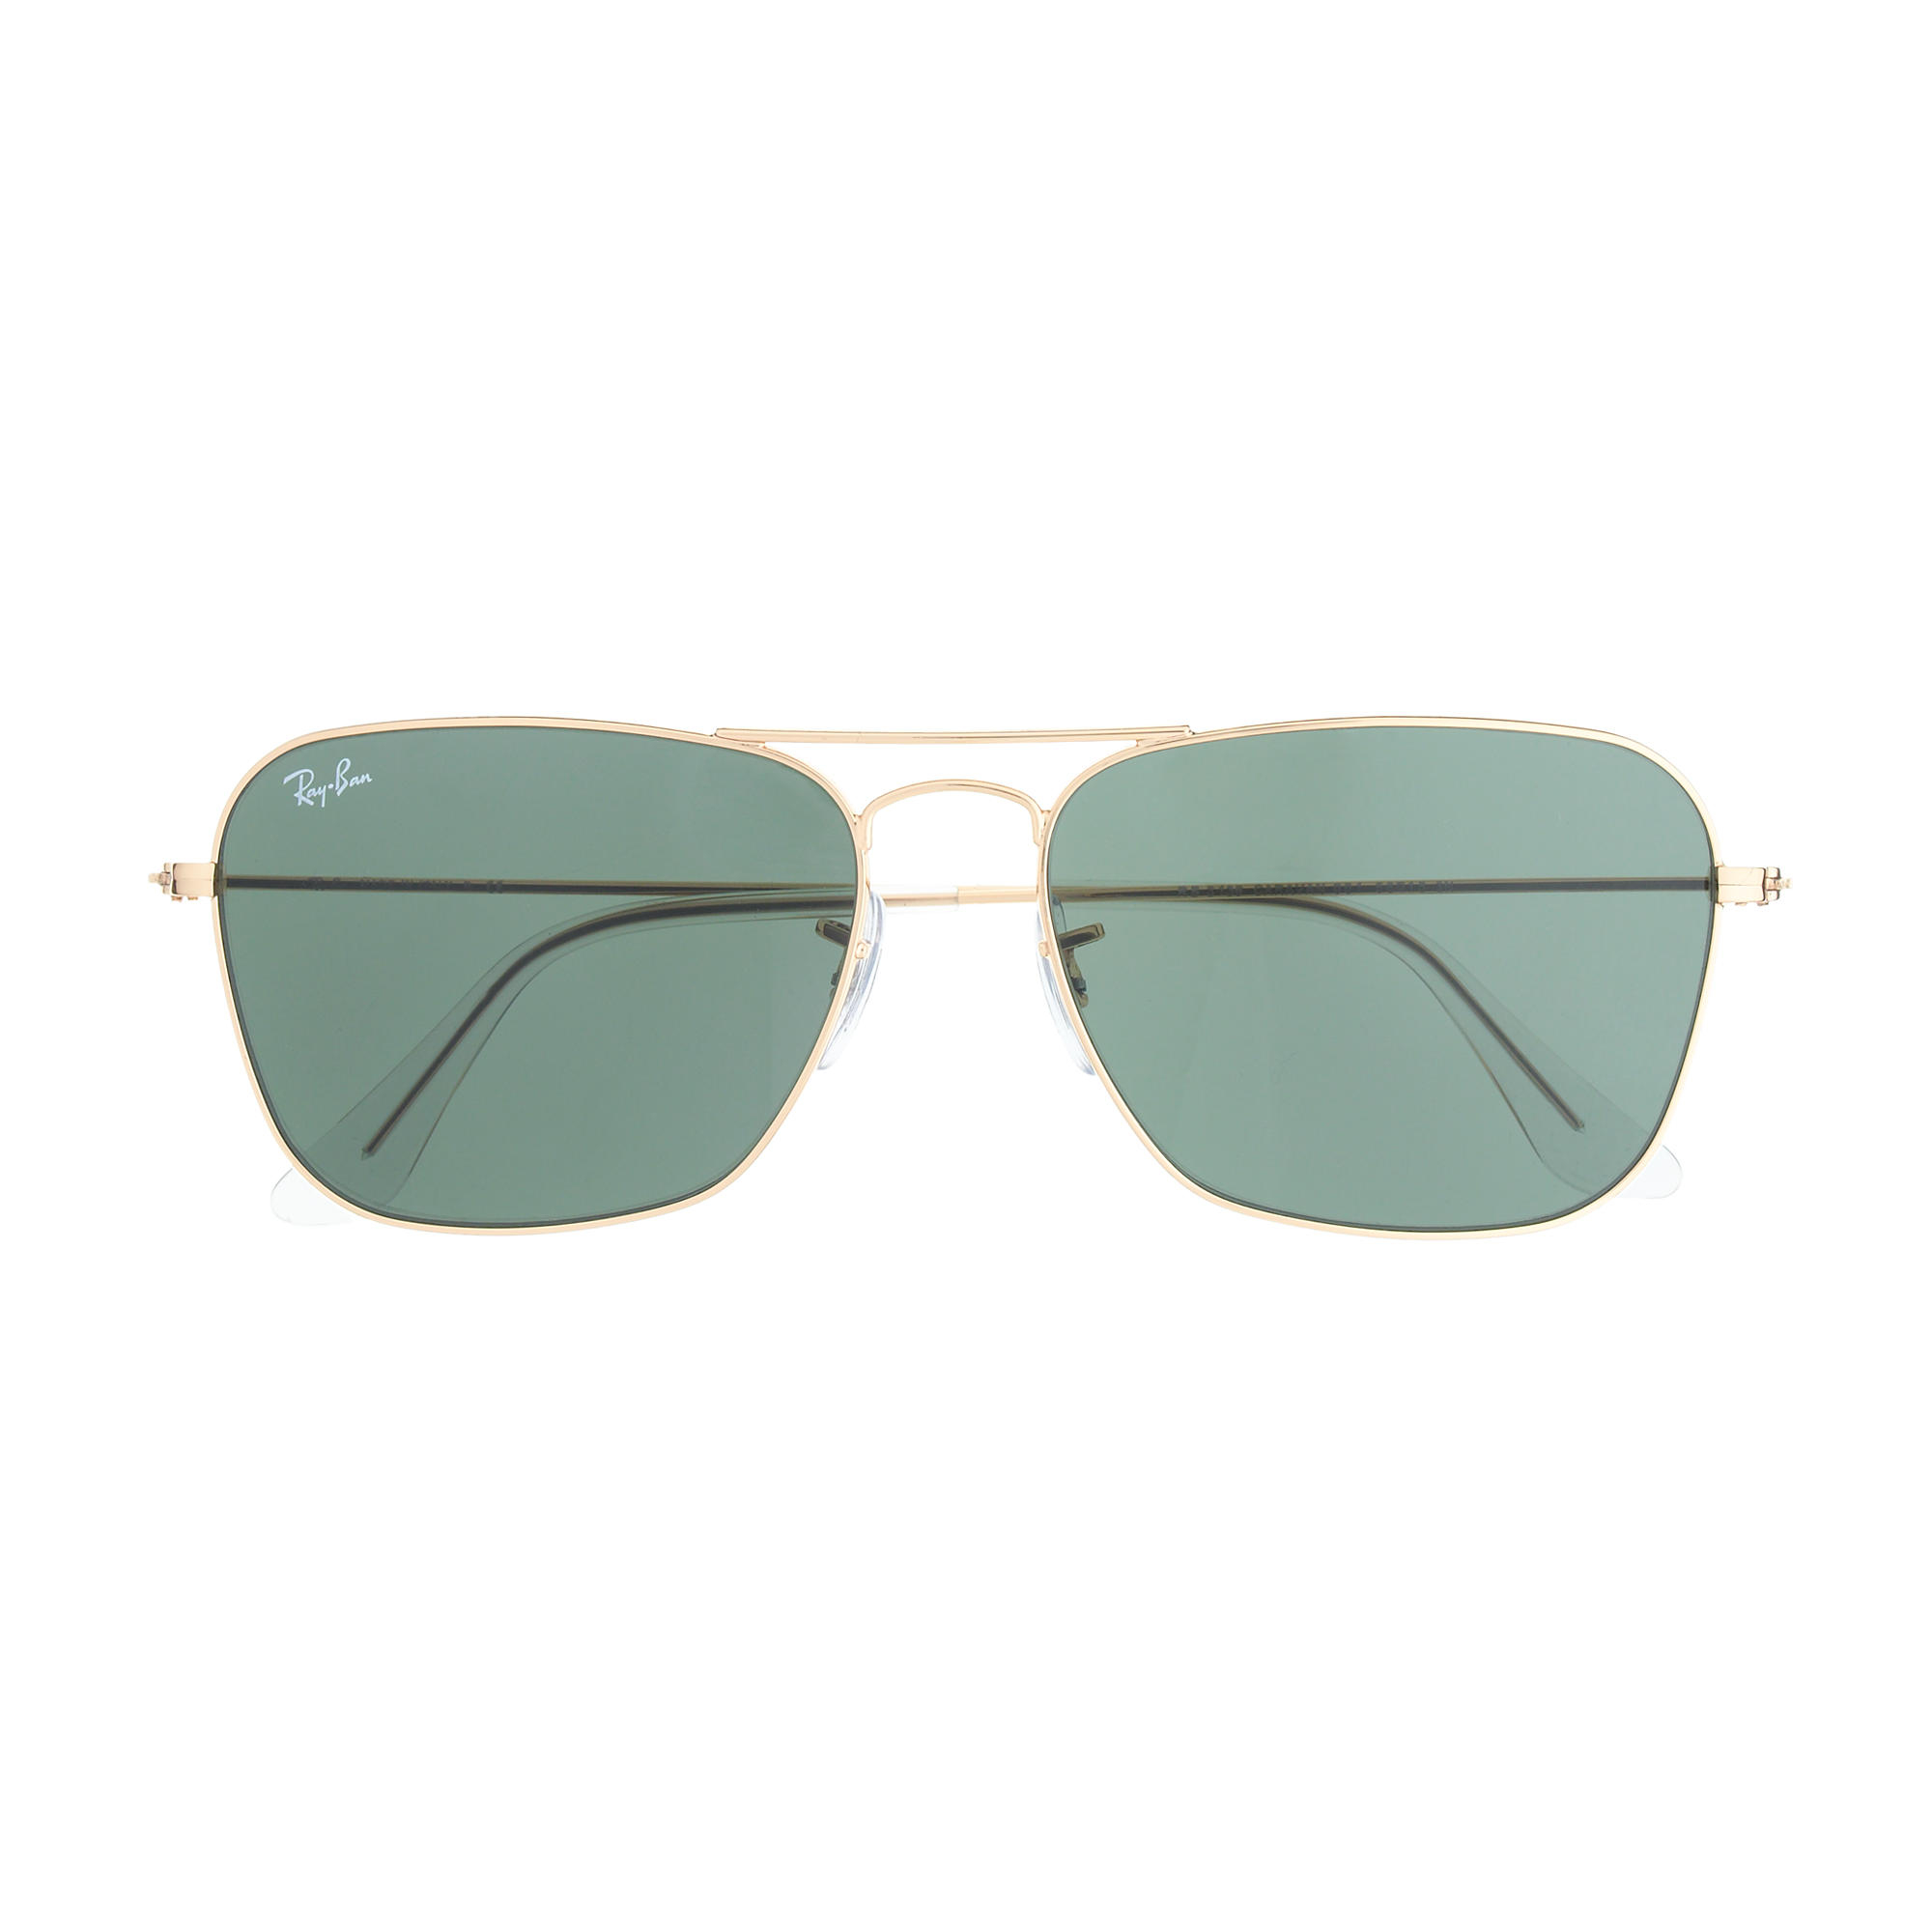 2323c5deac Buy Ray Ban Caravan Mmw1037 | United Nations System Chief Executives ...